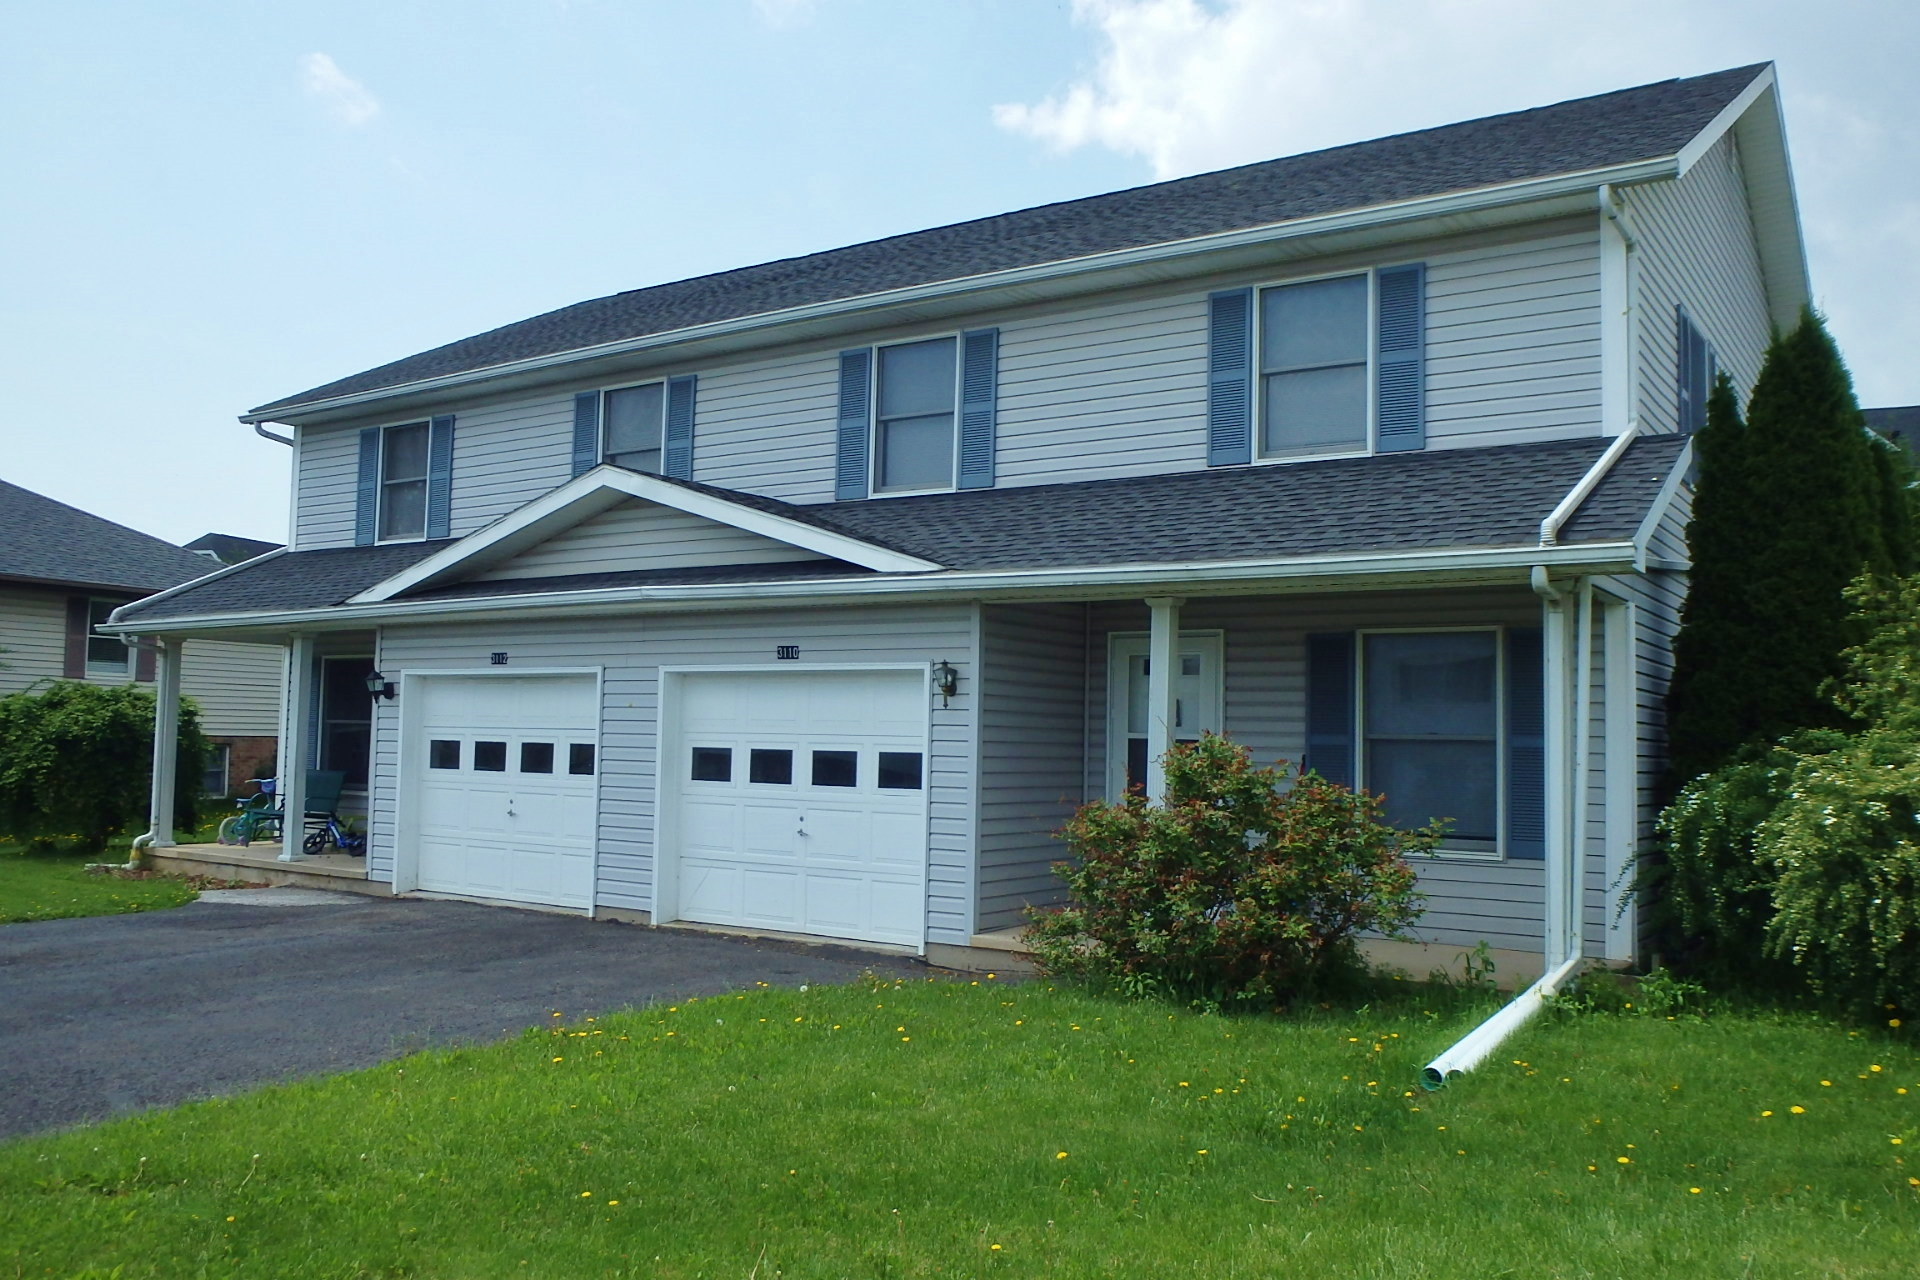 3110 Shellers Bend, 3-Bedroom Duplex for rent in State College, PA.